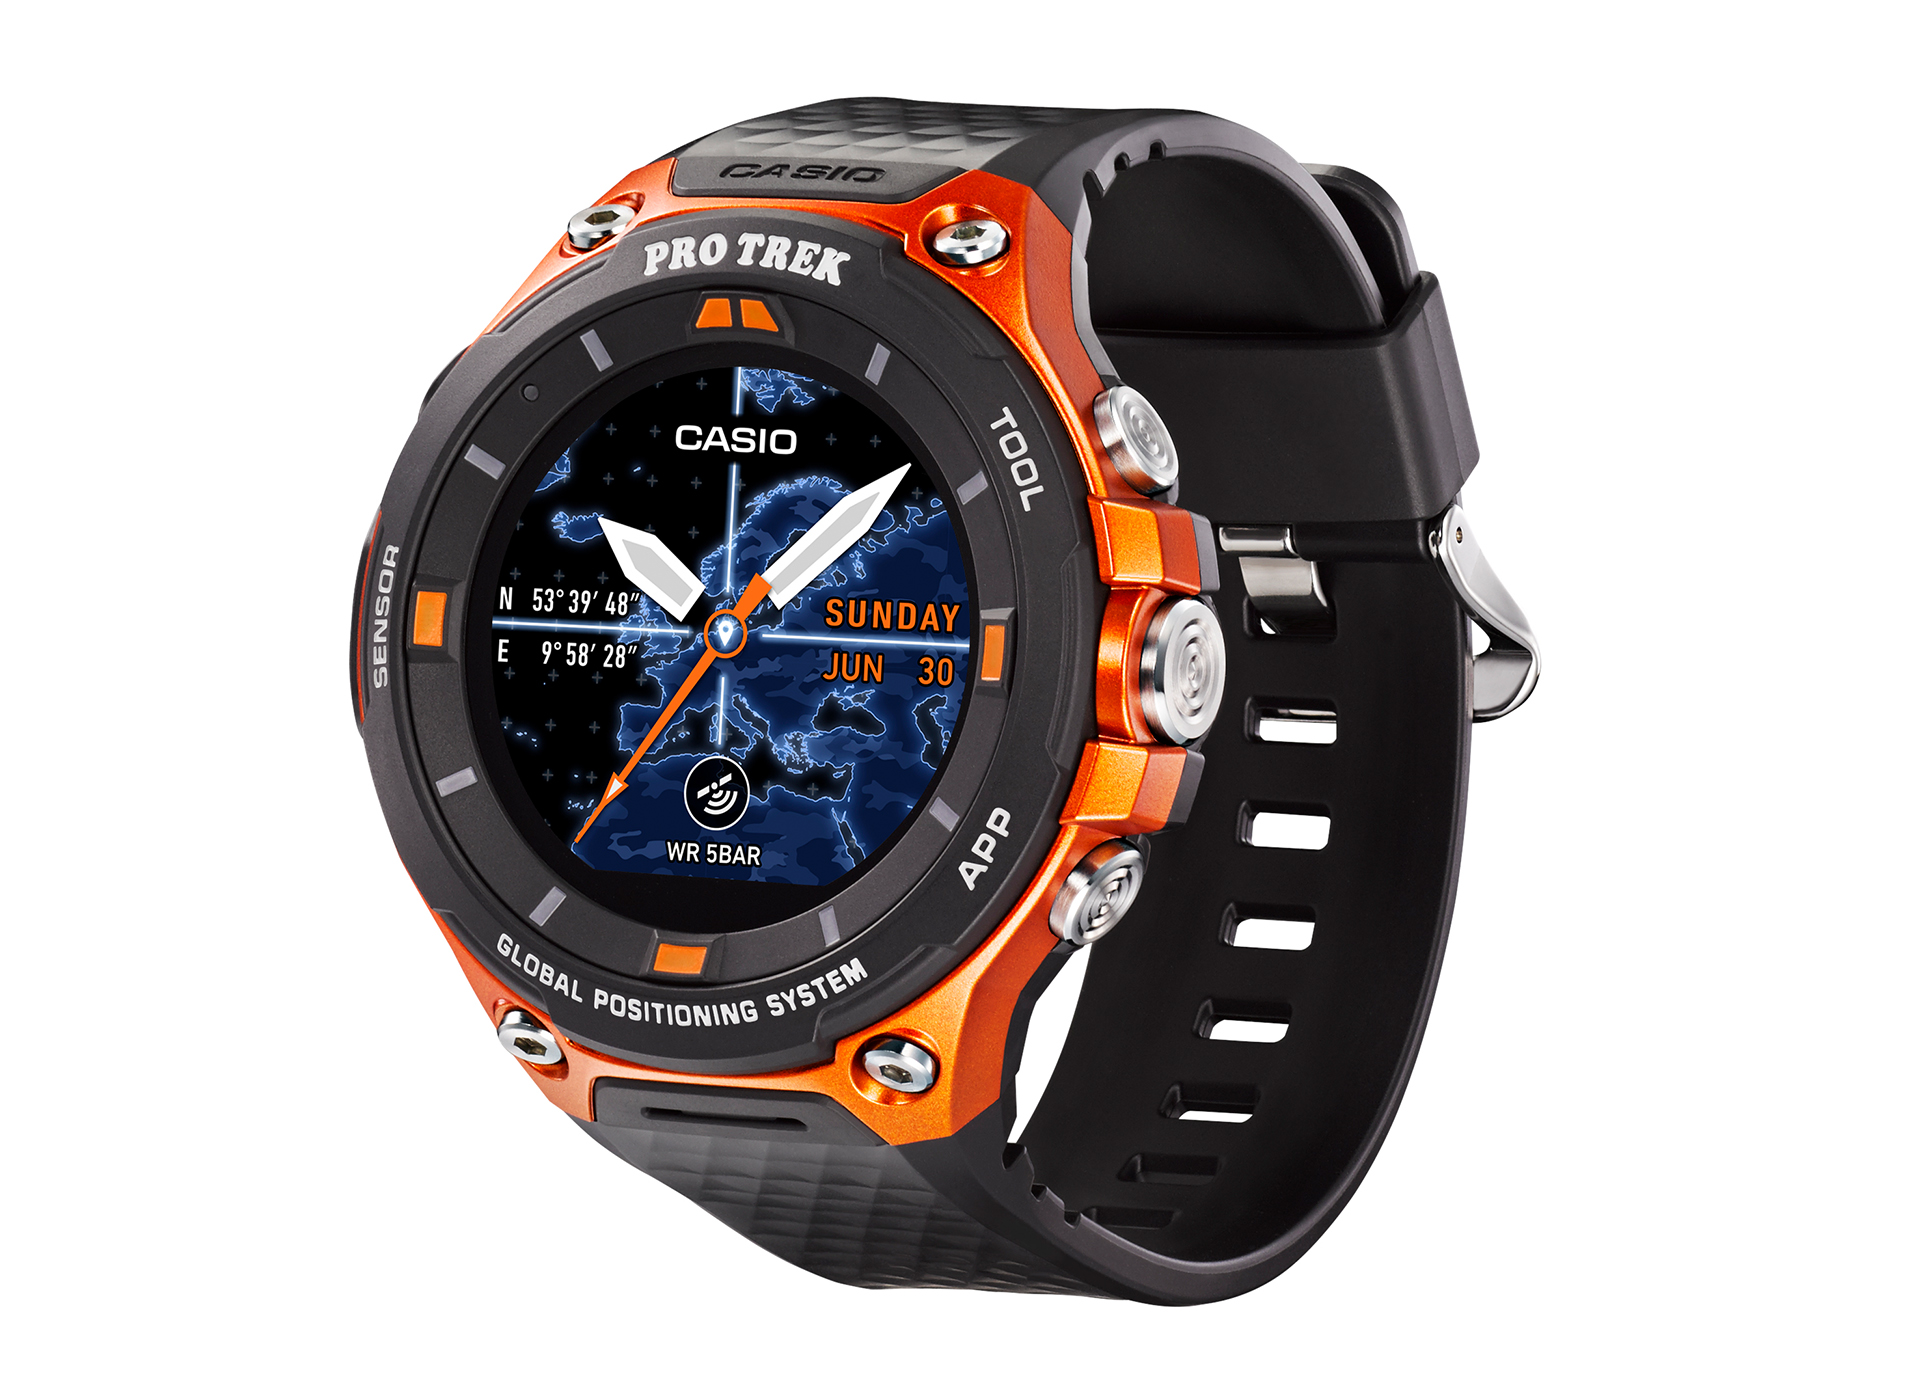 Casio S New Outdoor Watch Is One Of The First Android Wear